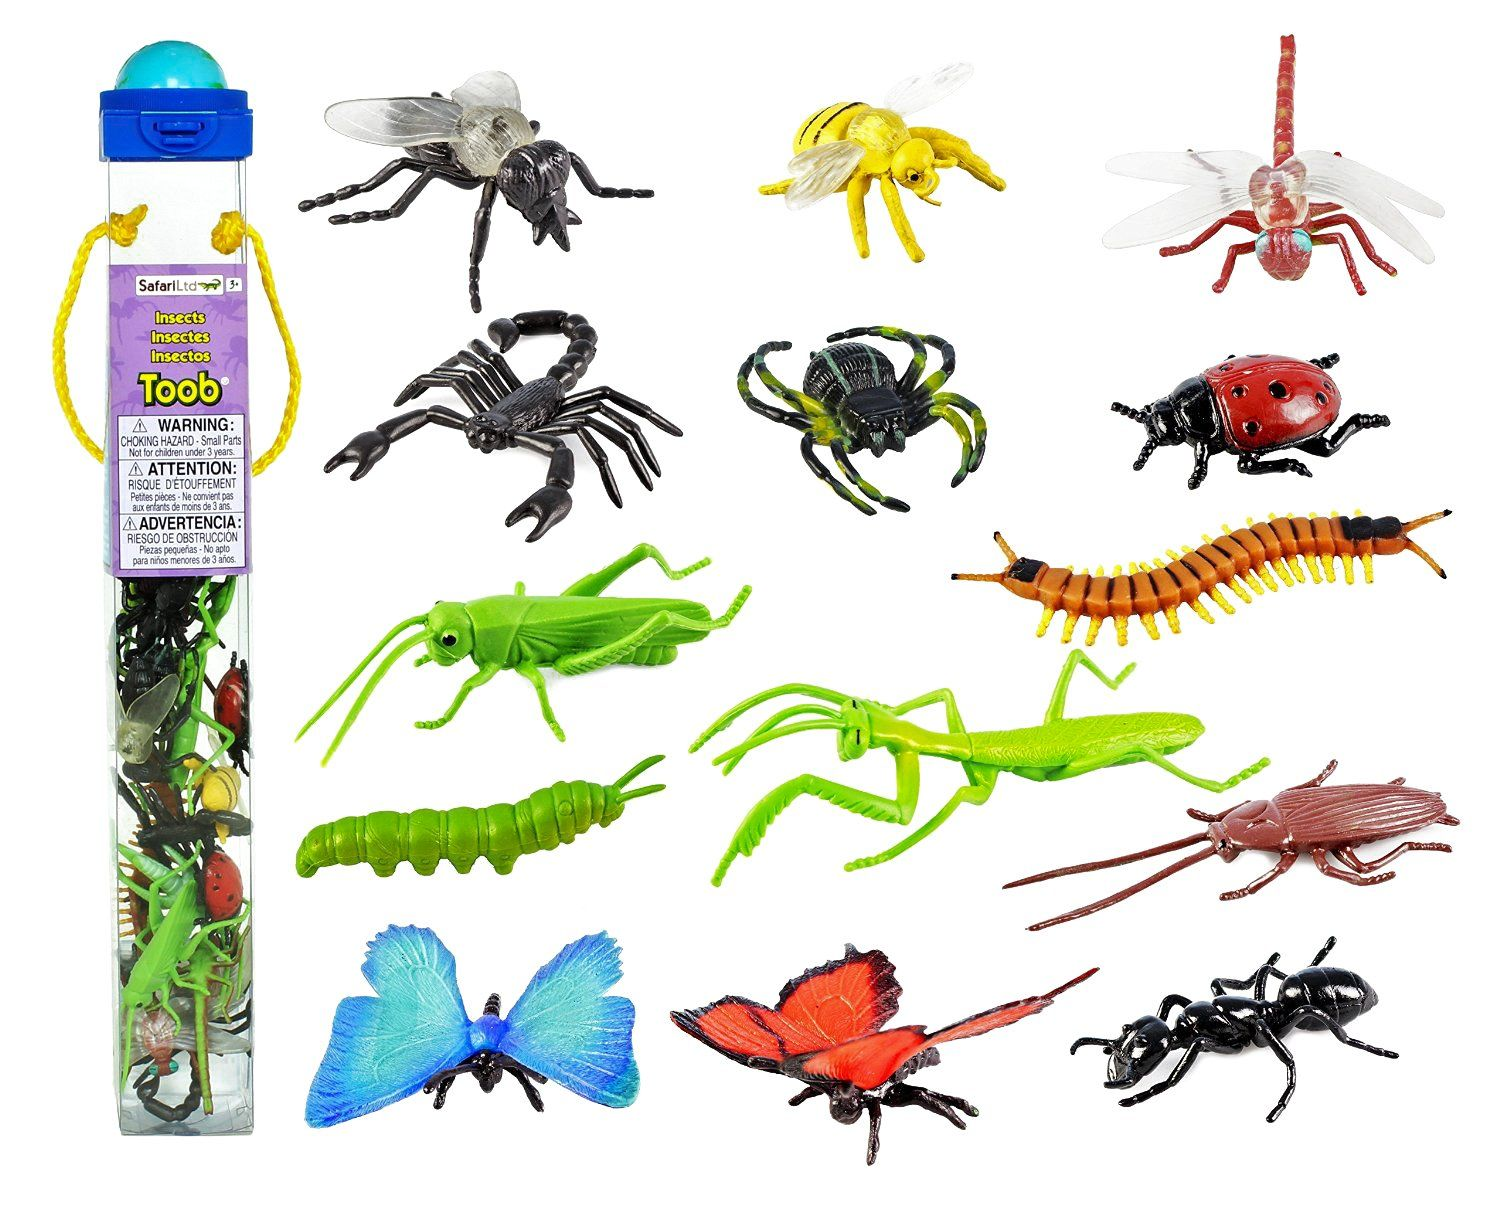 Safari Ltd Insects Toob With 14 Toy Figurines Including A